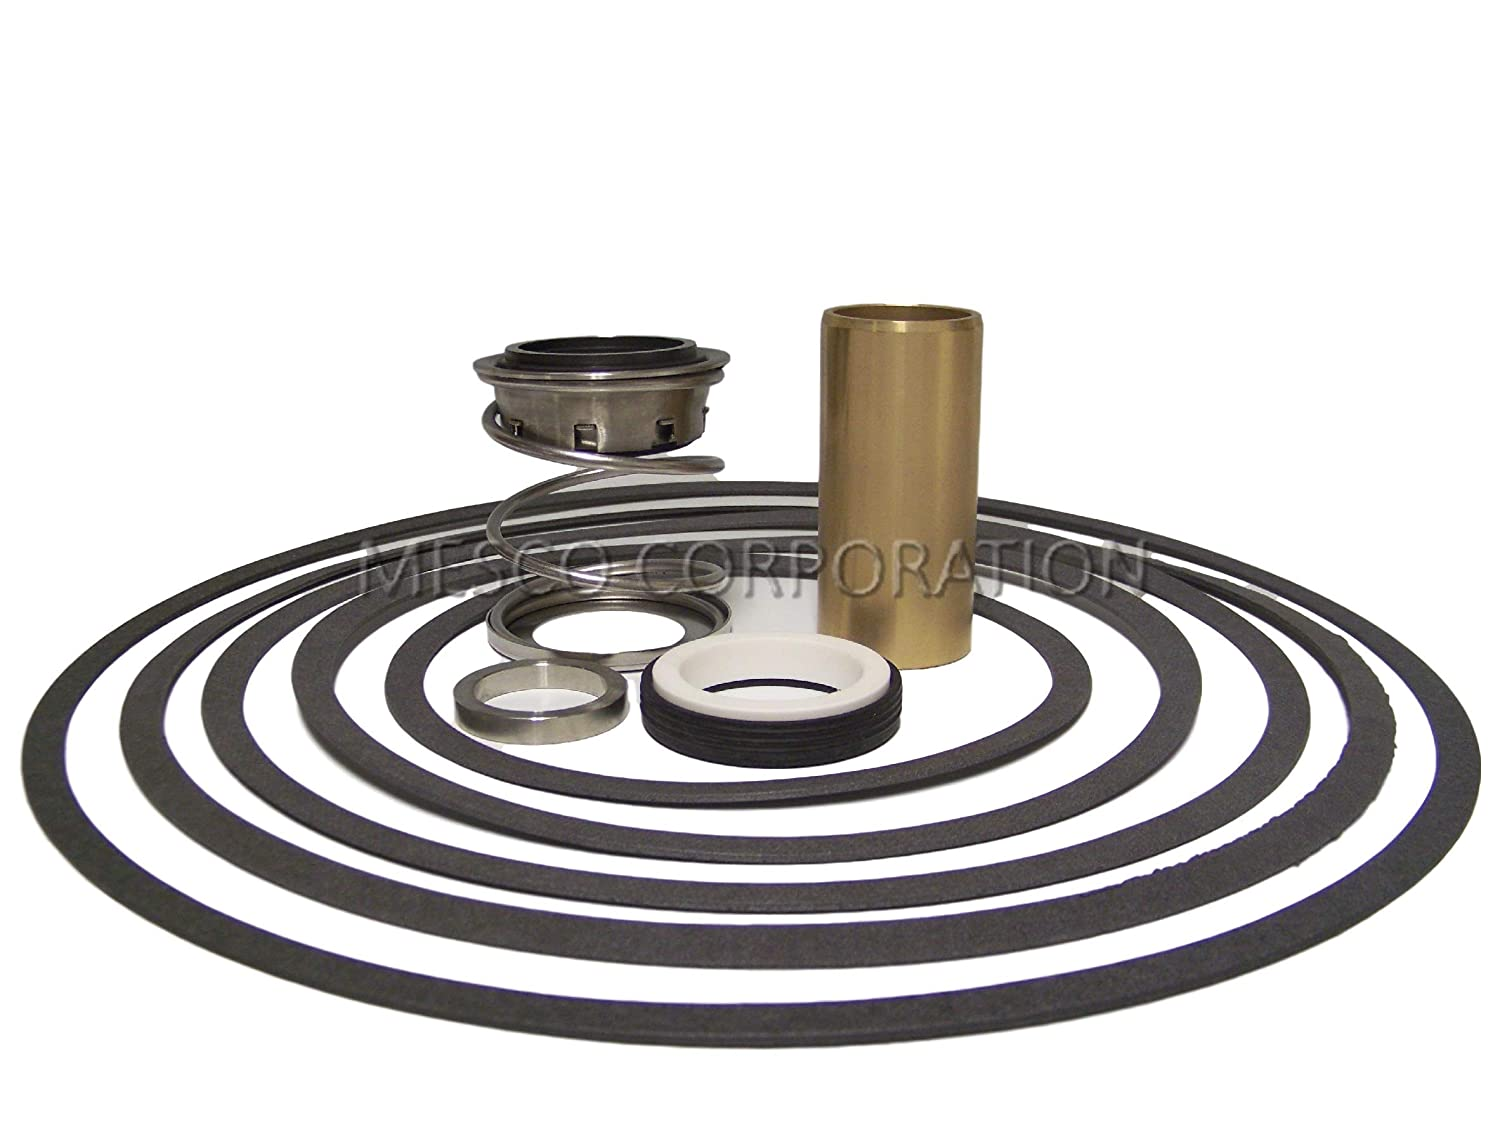 Mesco Corp OFFer New sales Replacement kit for 4380 1.62 Armstrong 4280 Models